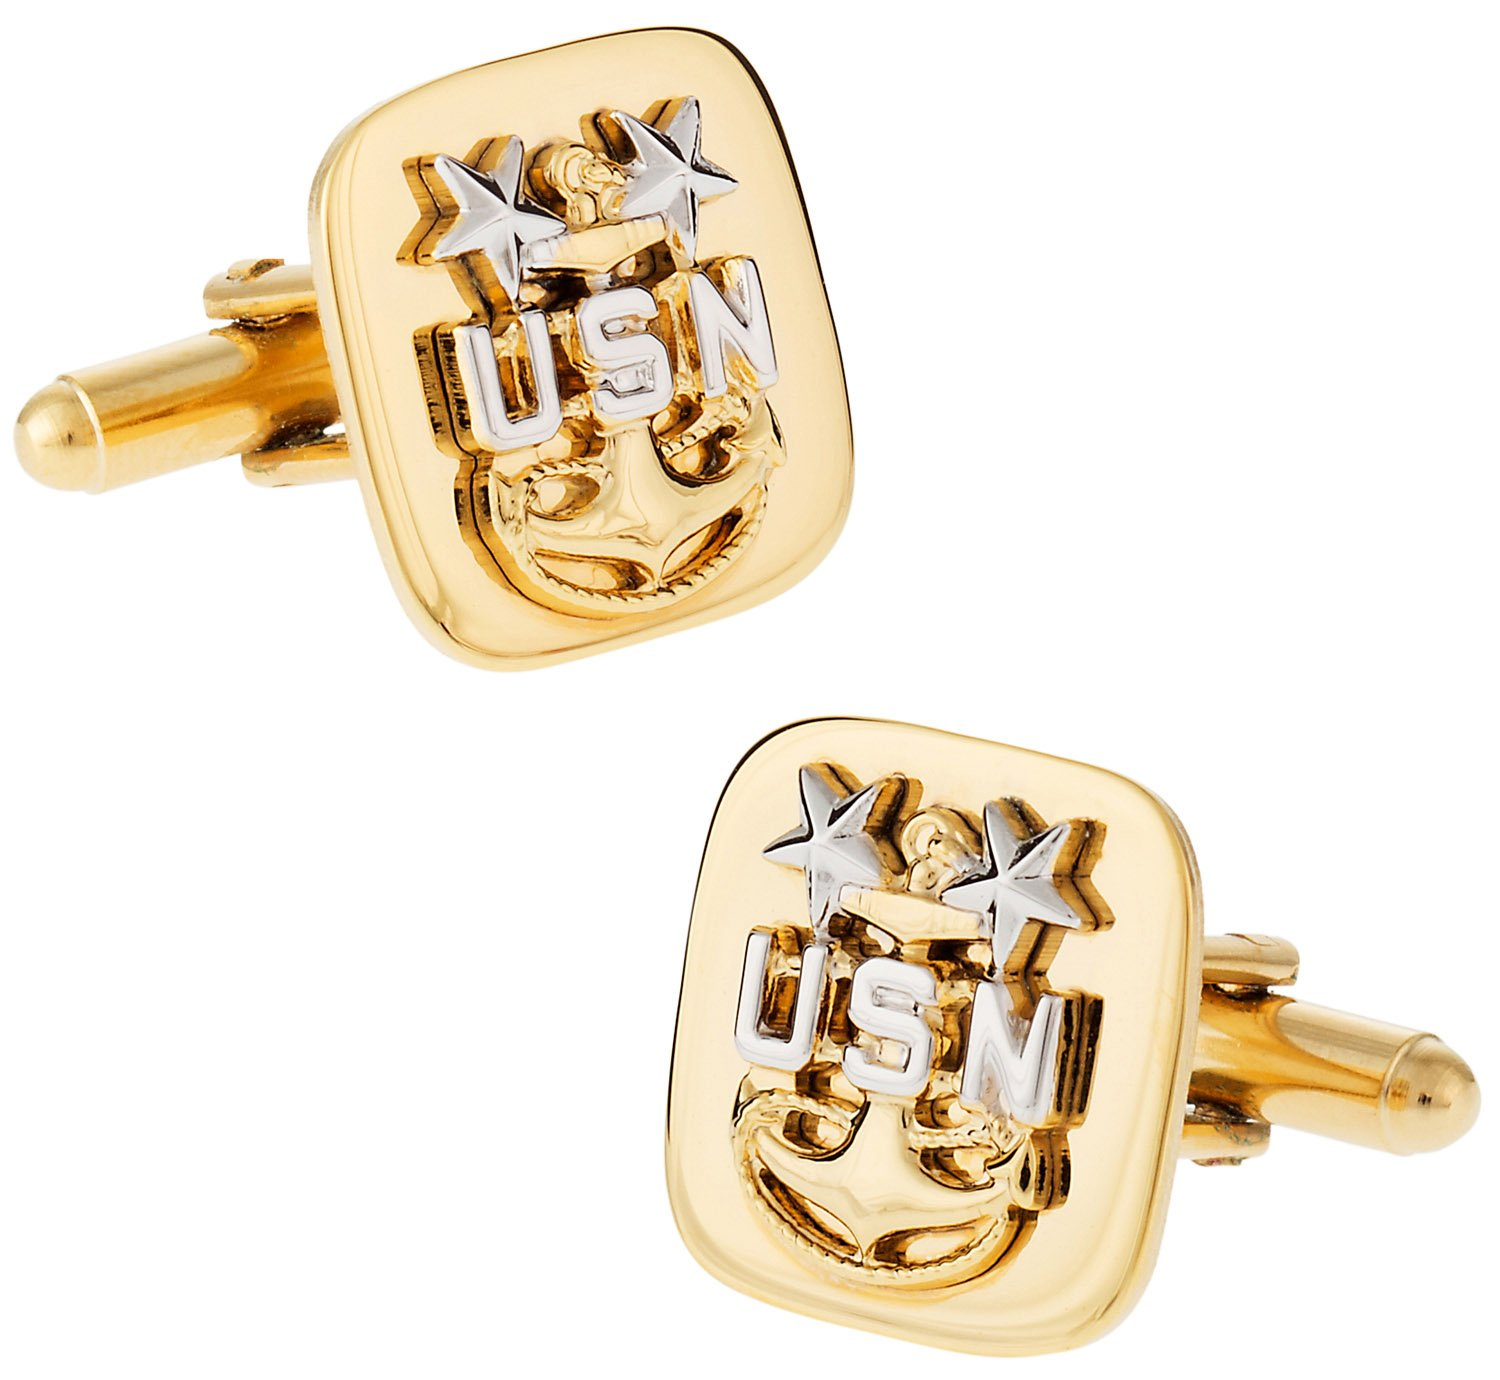 Cuff-Daddy Navy Cufflinks: E9 Chief Petty Officer: Master - Gold with Presentation Box